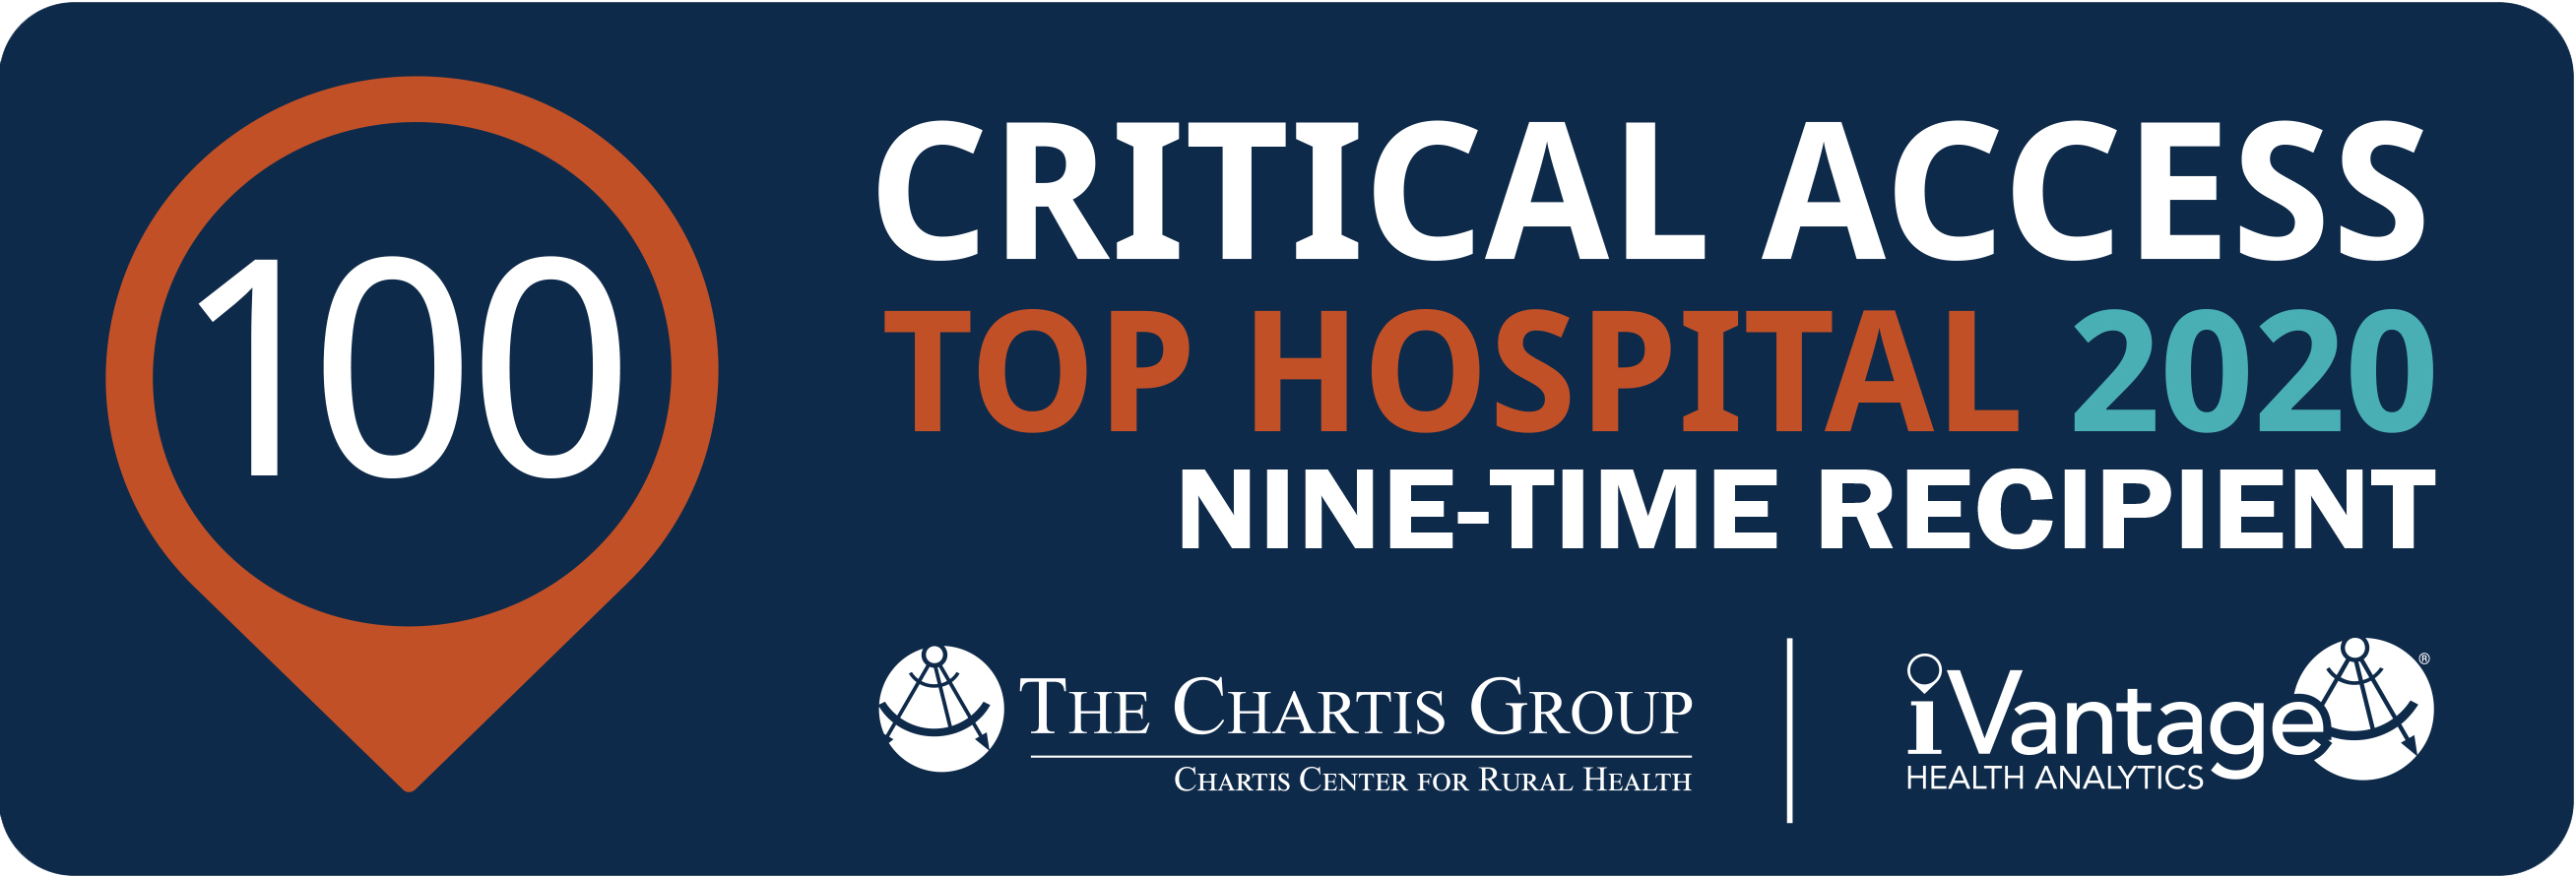 Critical Access Top Hospital 2019 Badge